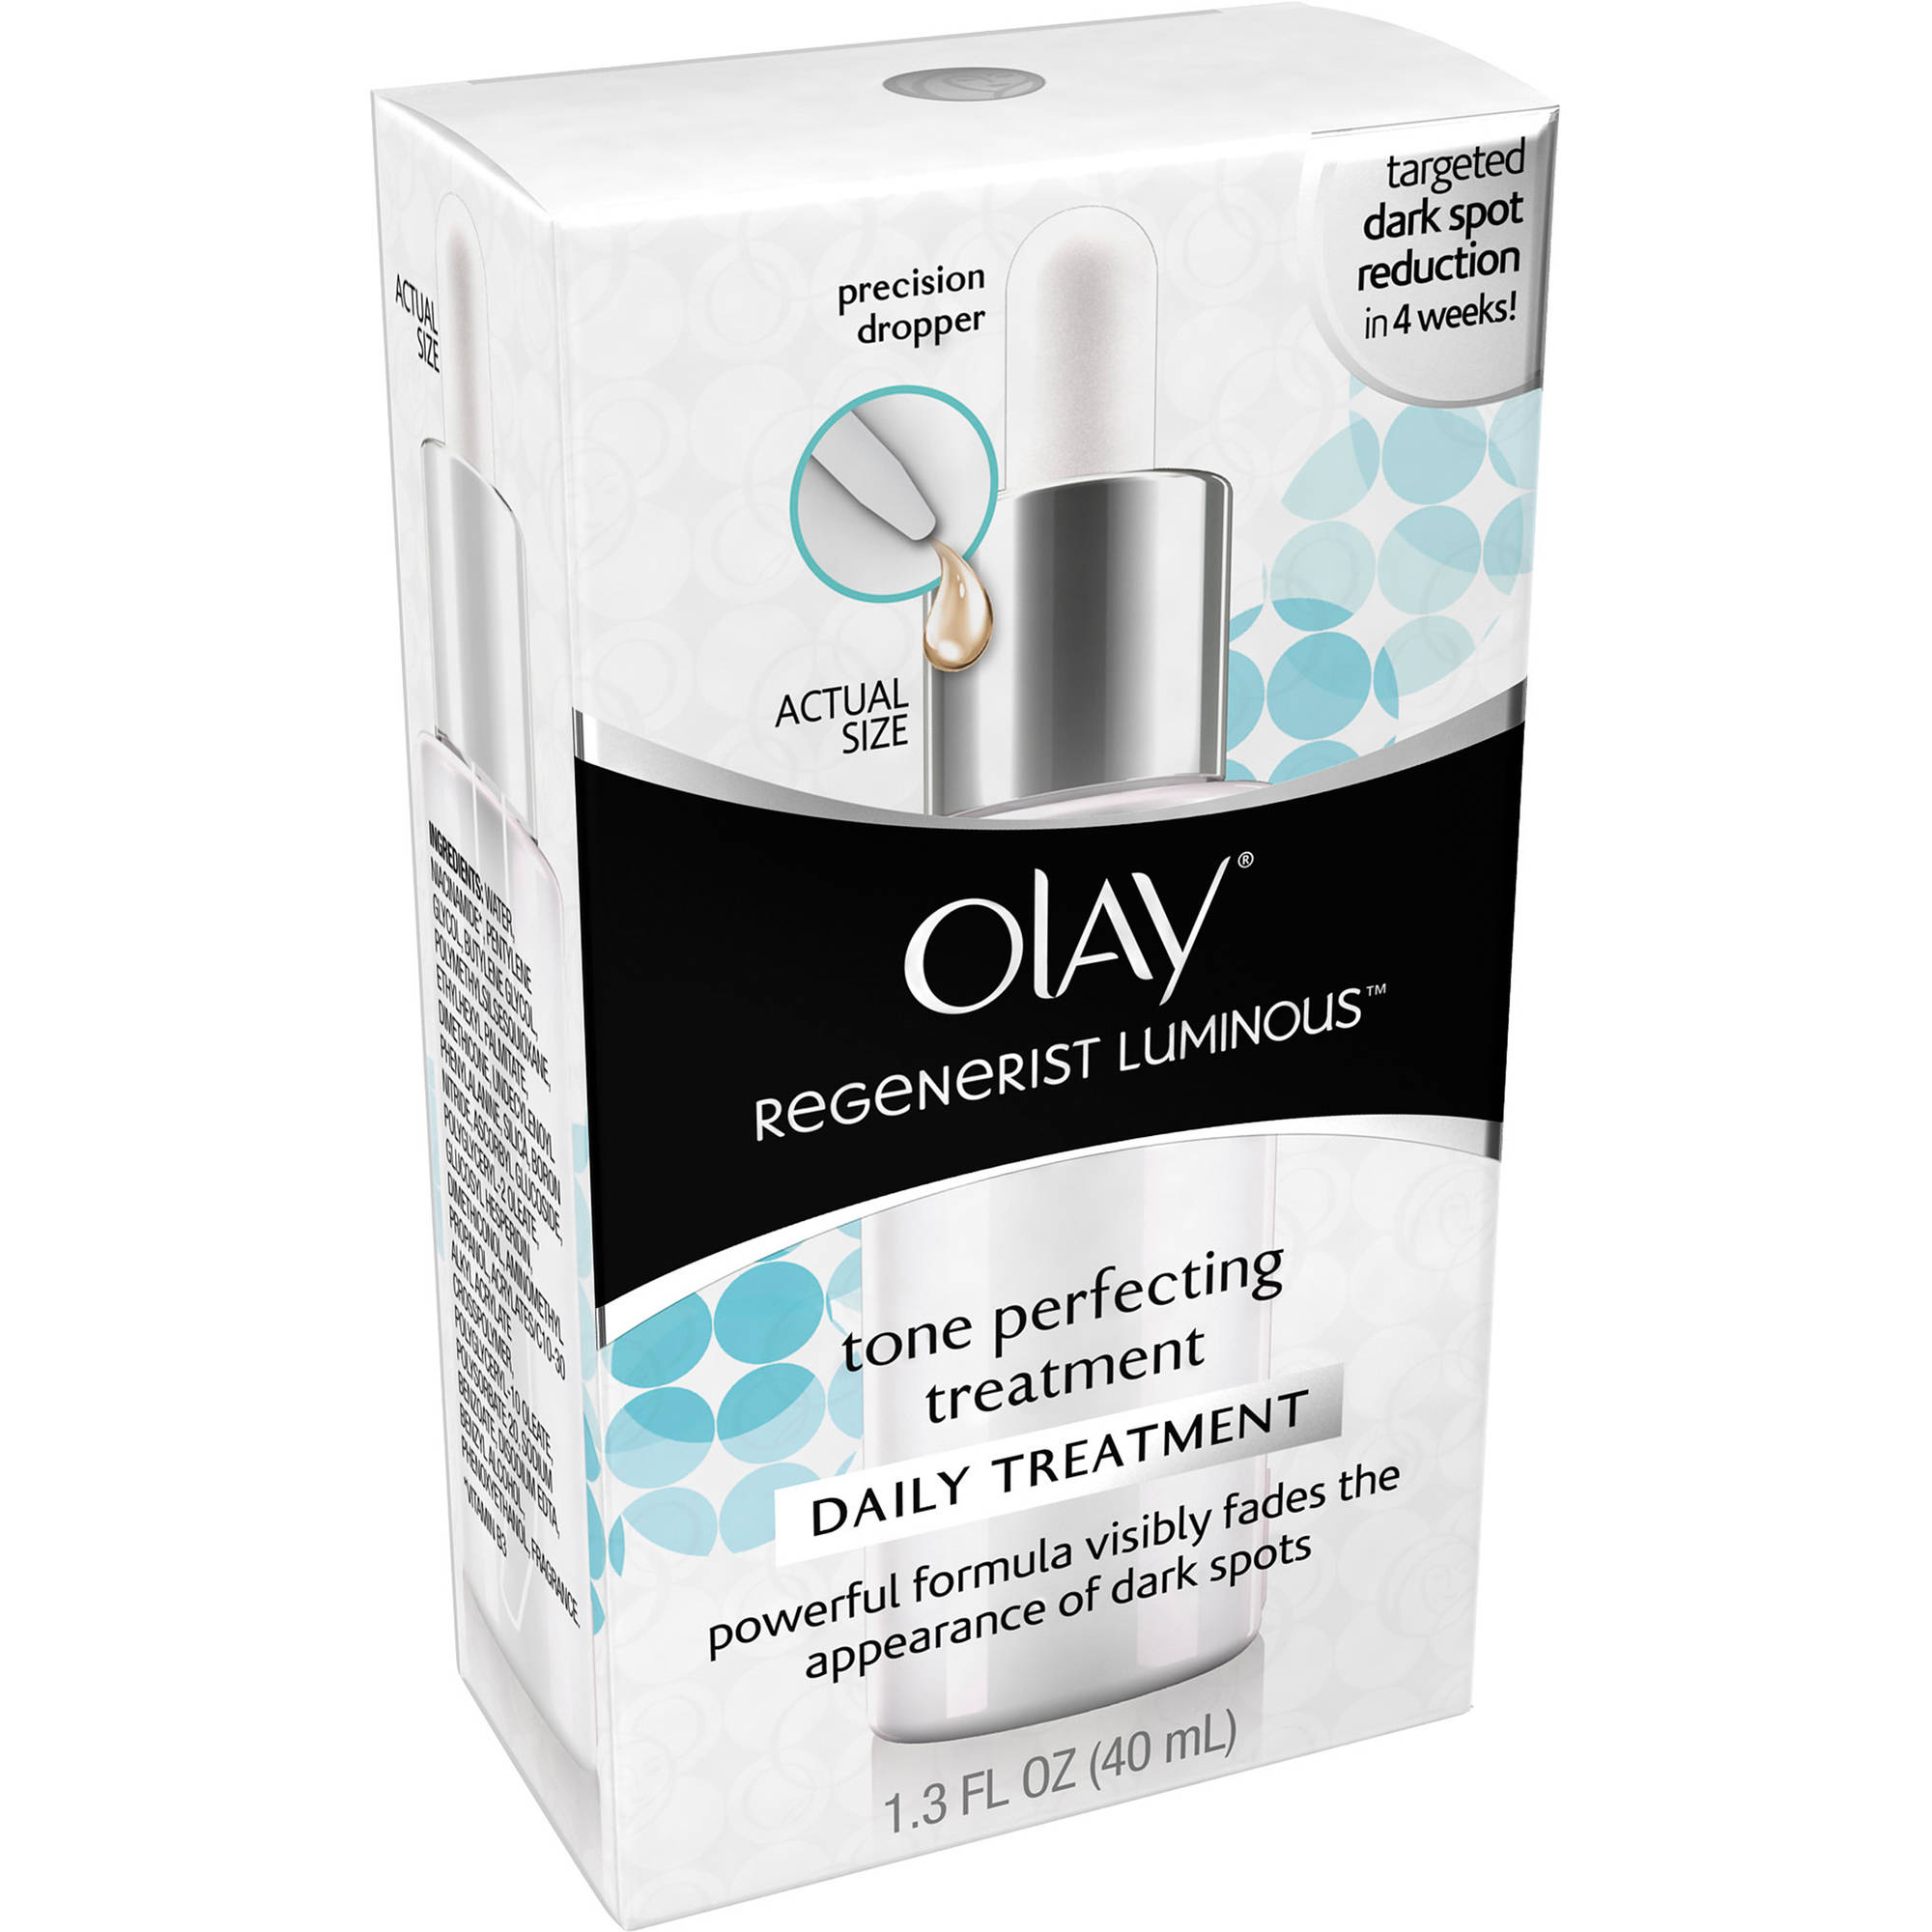 Olay Regenerist Luminous Tone Perfecting Treatment, 1.3 fl oz